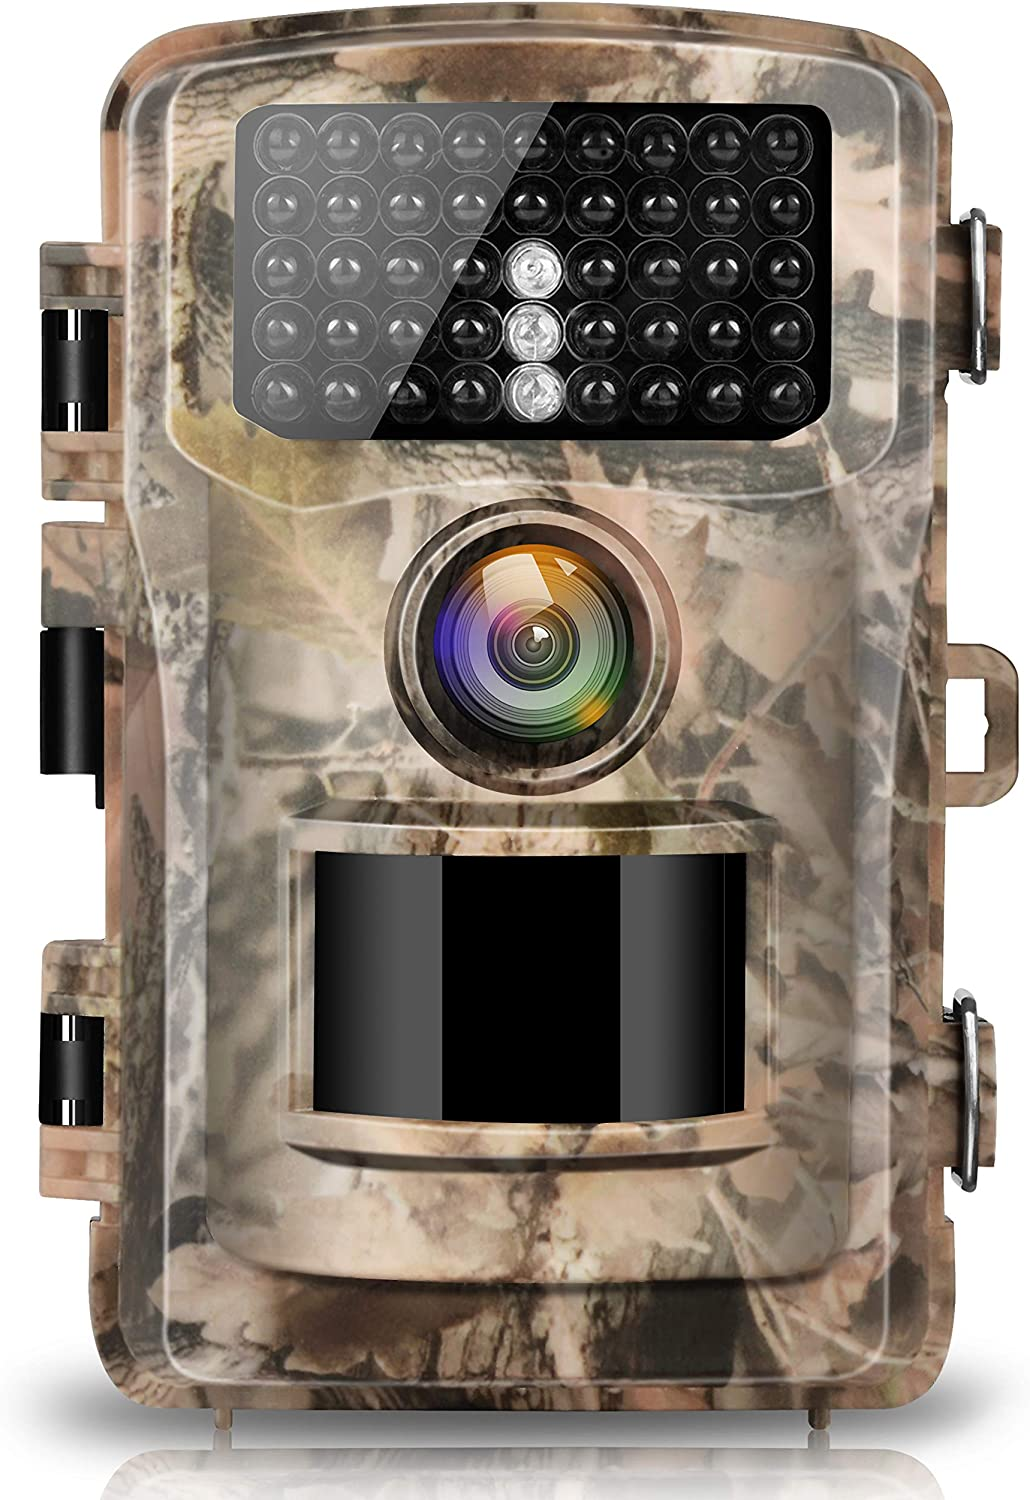 Campark Trail Camera 14MP 1080P 2.4 LCD Game Hunting Camera with 42pcs IR LEDs Infrared Night Vision up to 75ft 23m IP56 Waterproof for Wildlife Animal Scouting Digital Surveillance